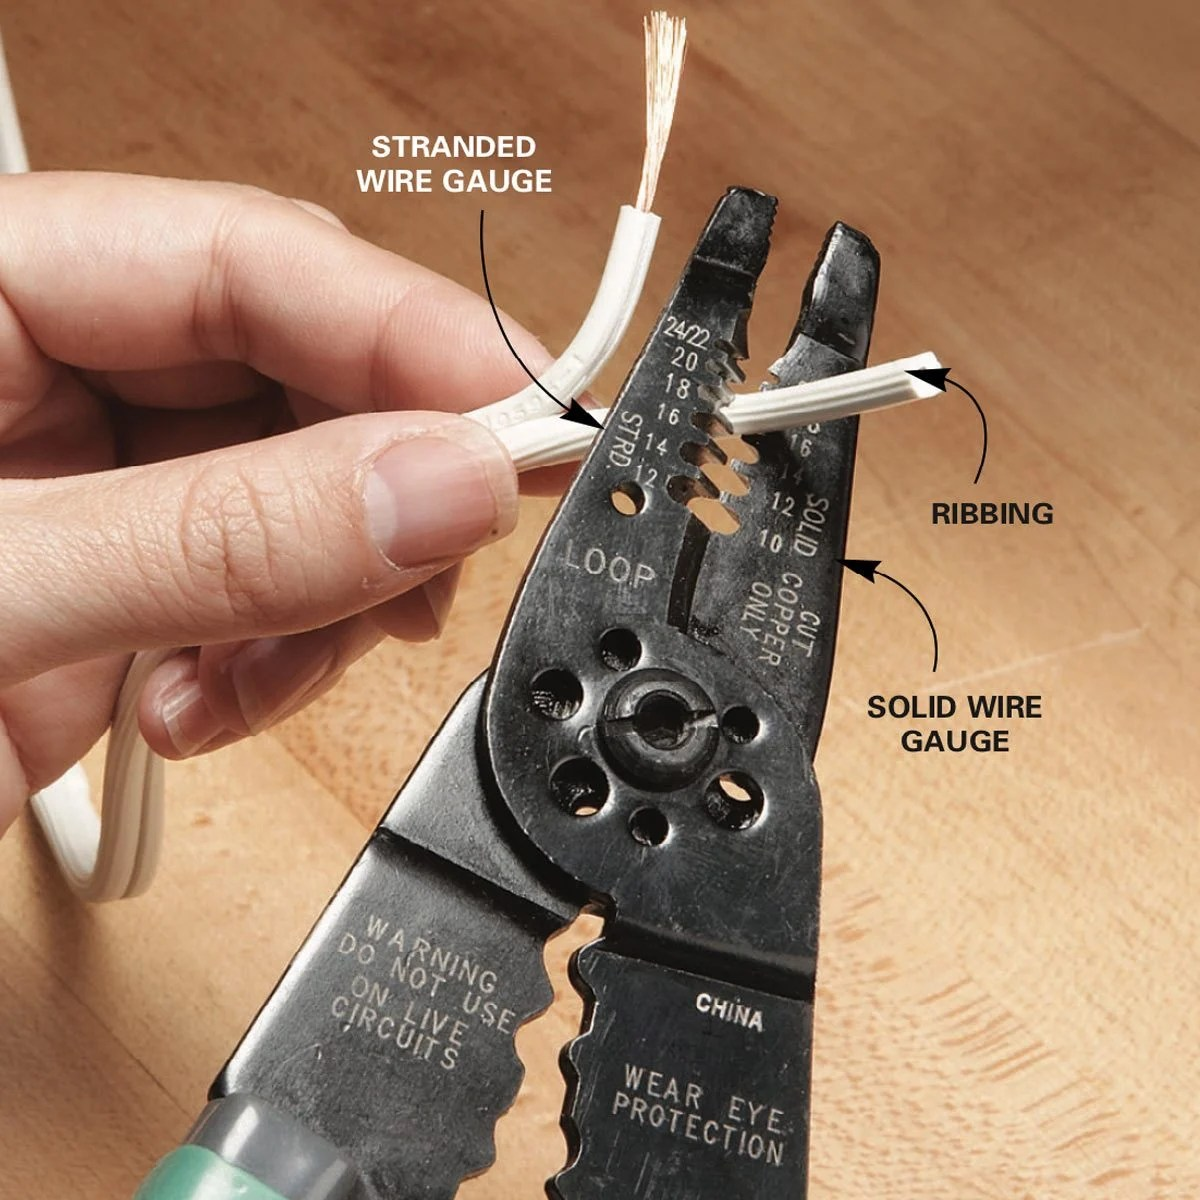 hight resolution of strip the insulation off the wire by cutting and pulling the wire through the wire stripper to prepare the cut end for a new plug cut or pull the two